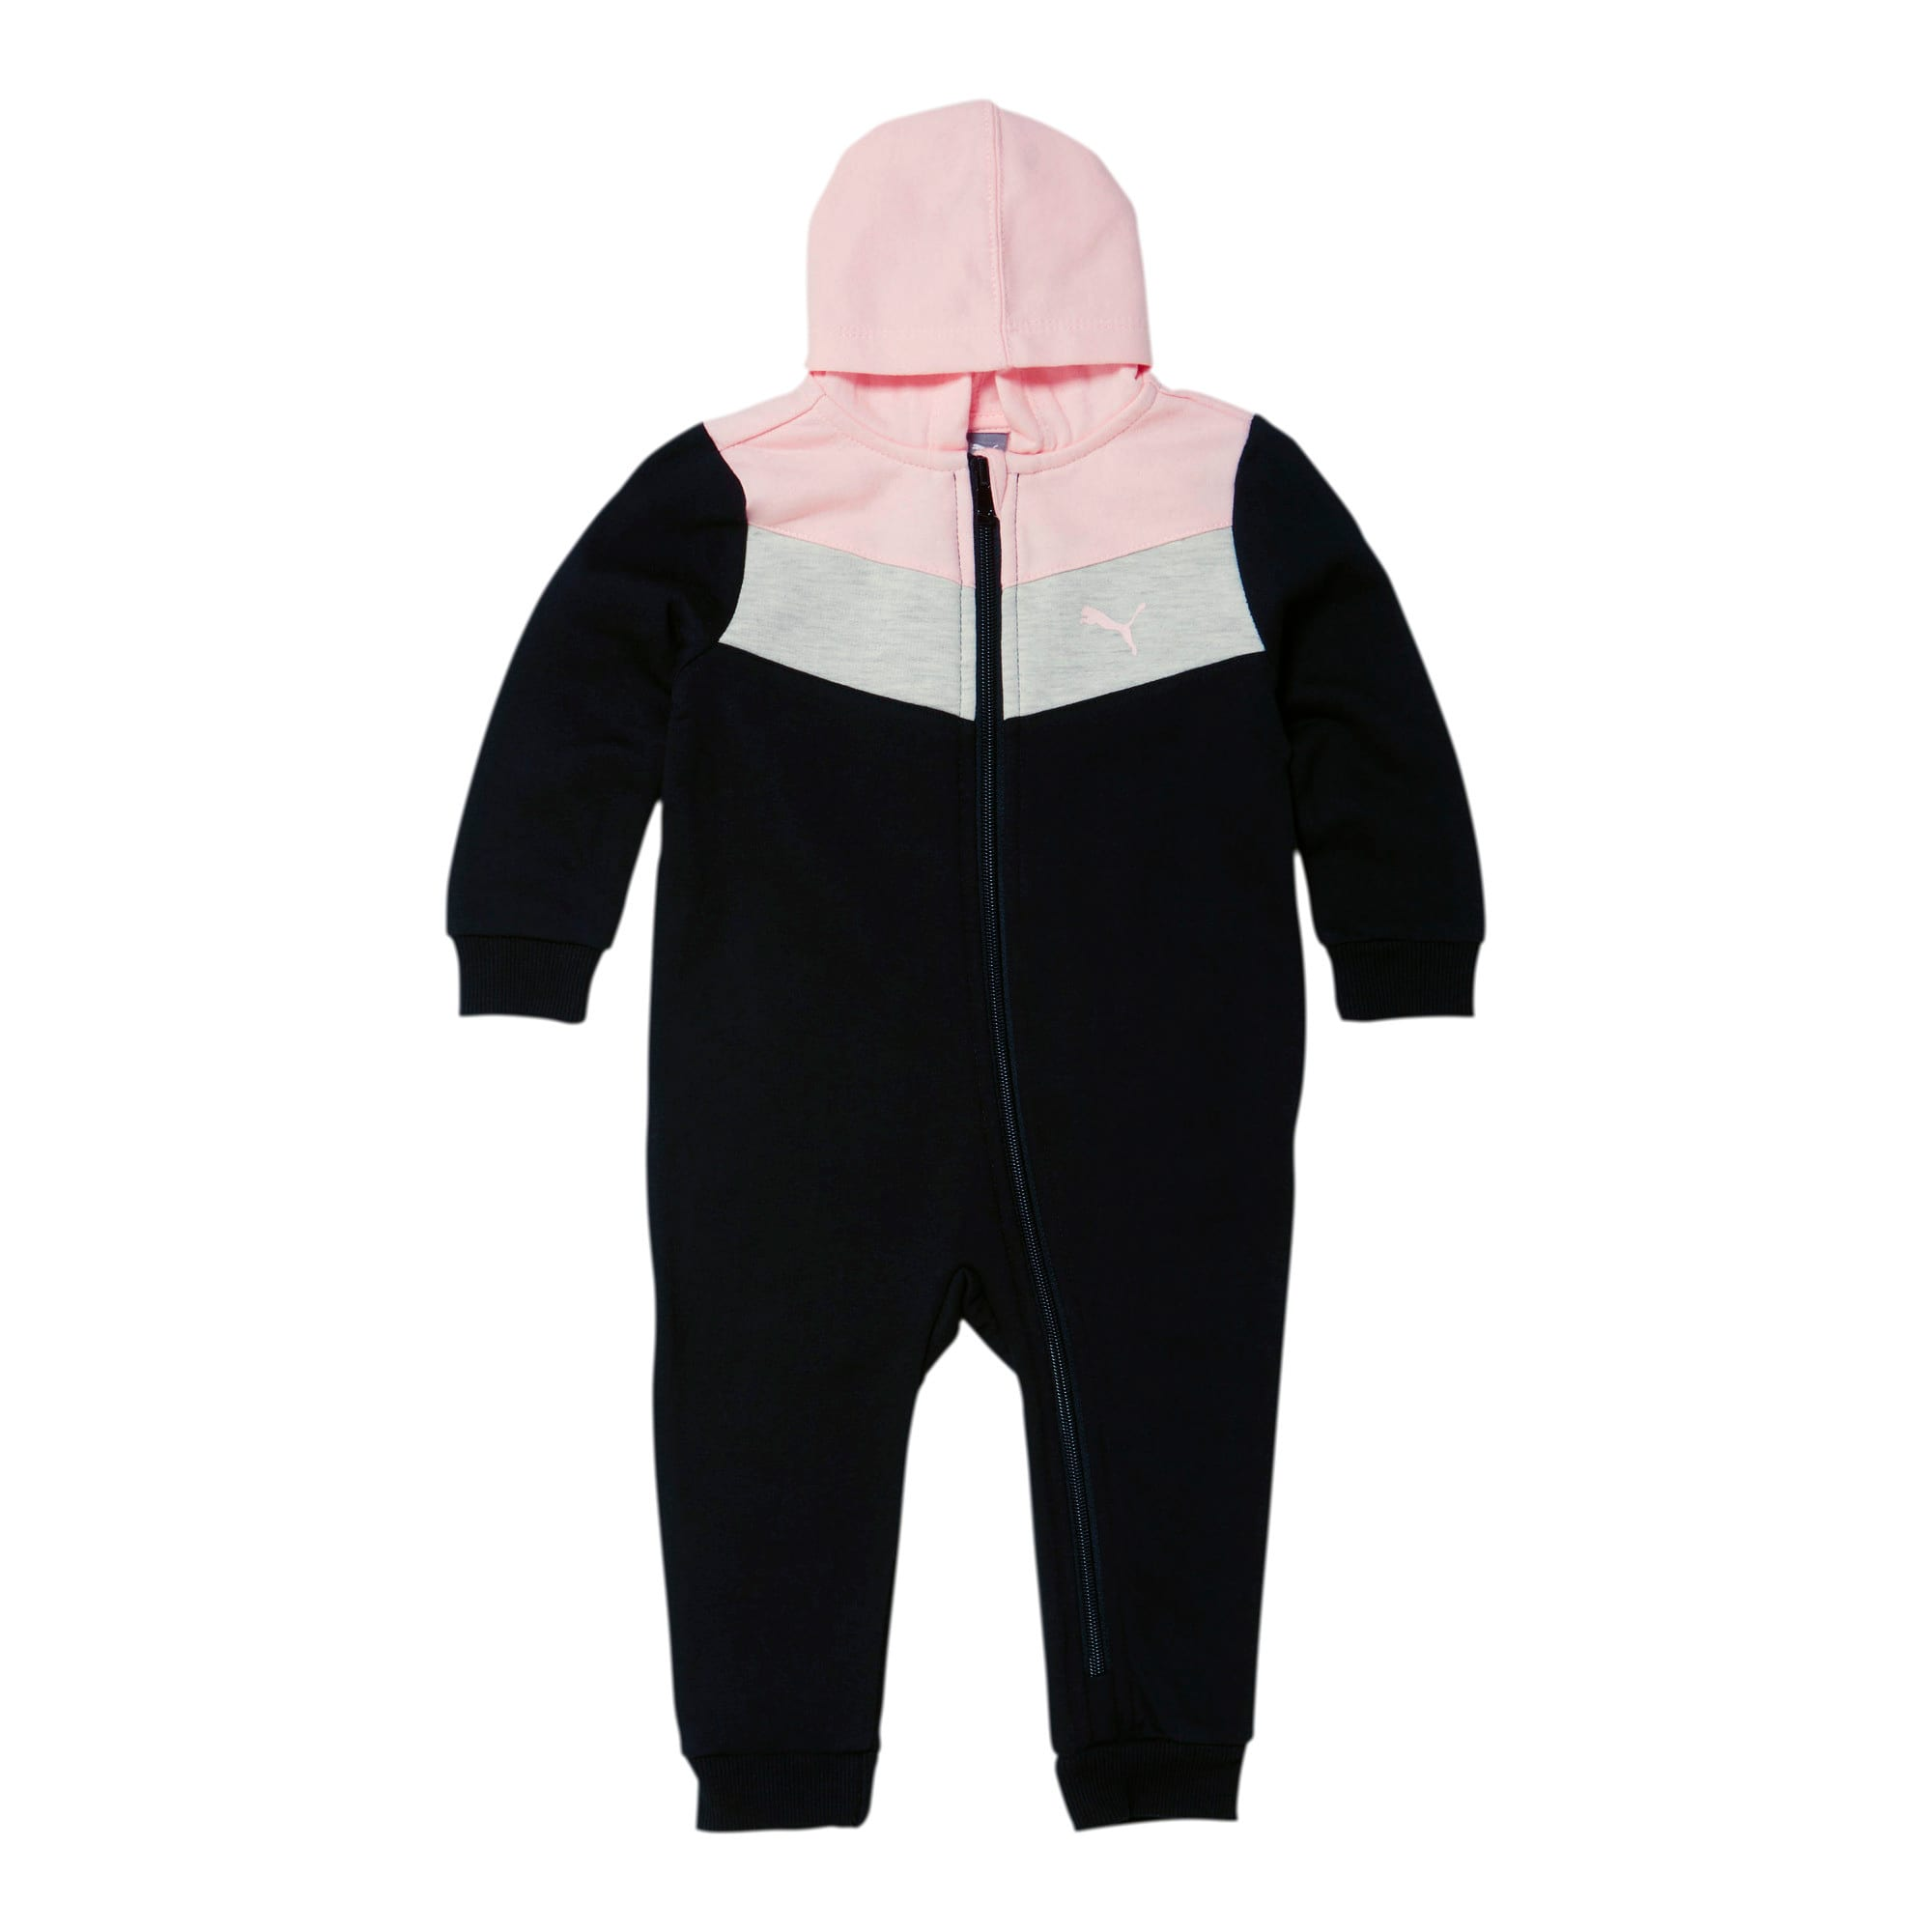 Thumbnail 1 of Colorblocked Fleece Infant Zip Up Hoodie Coverall, PUMA BLACK, medium